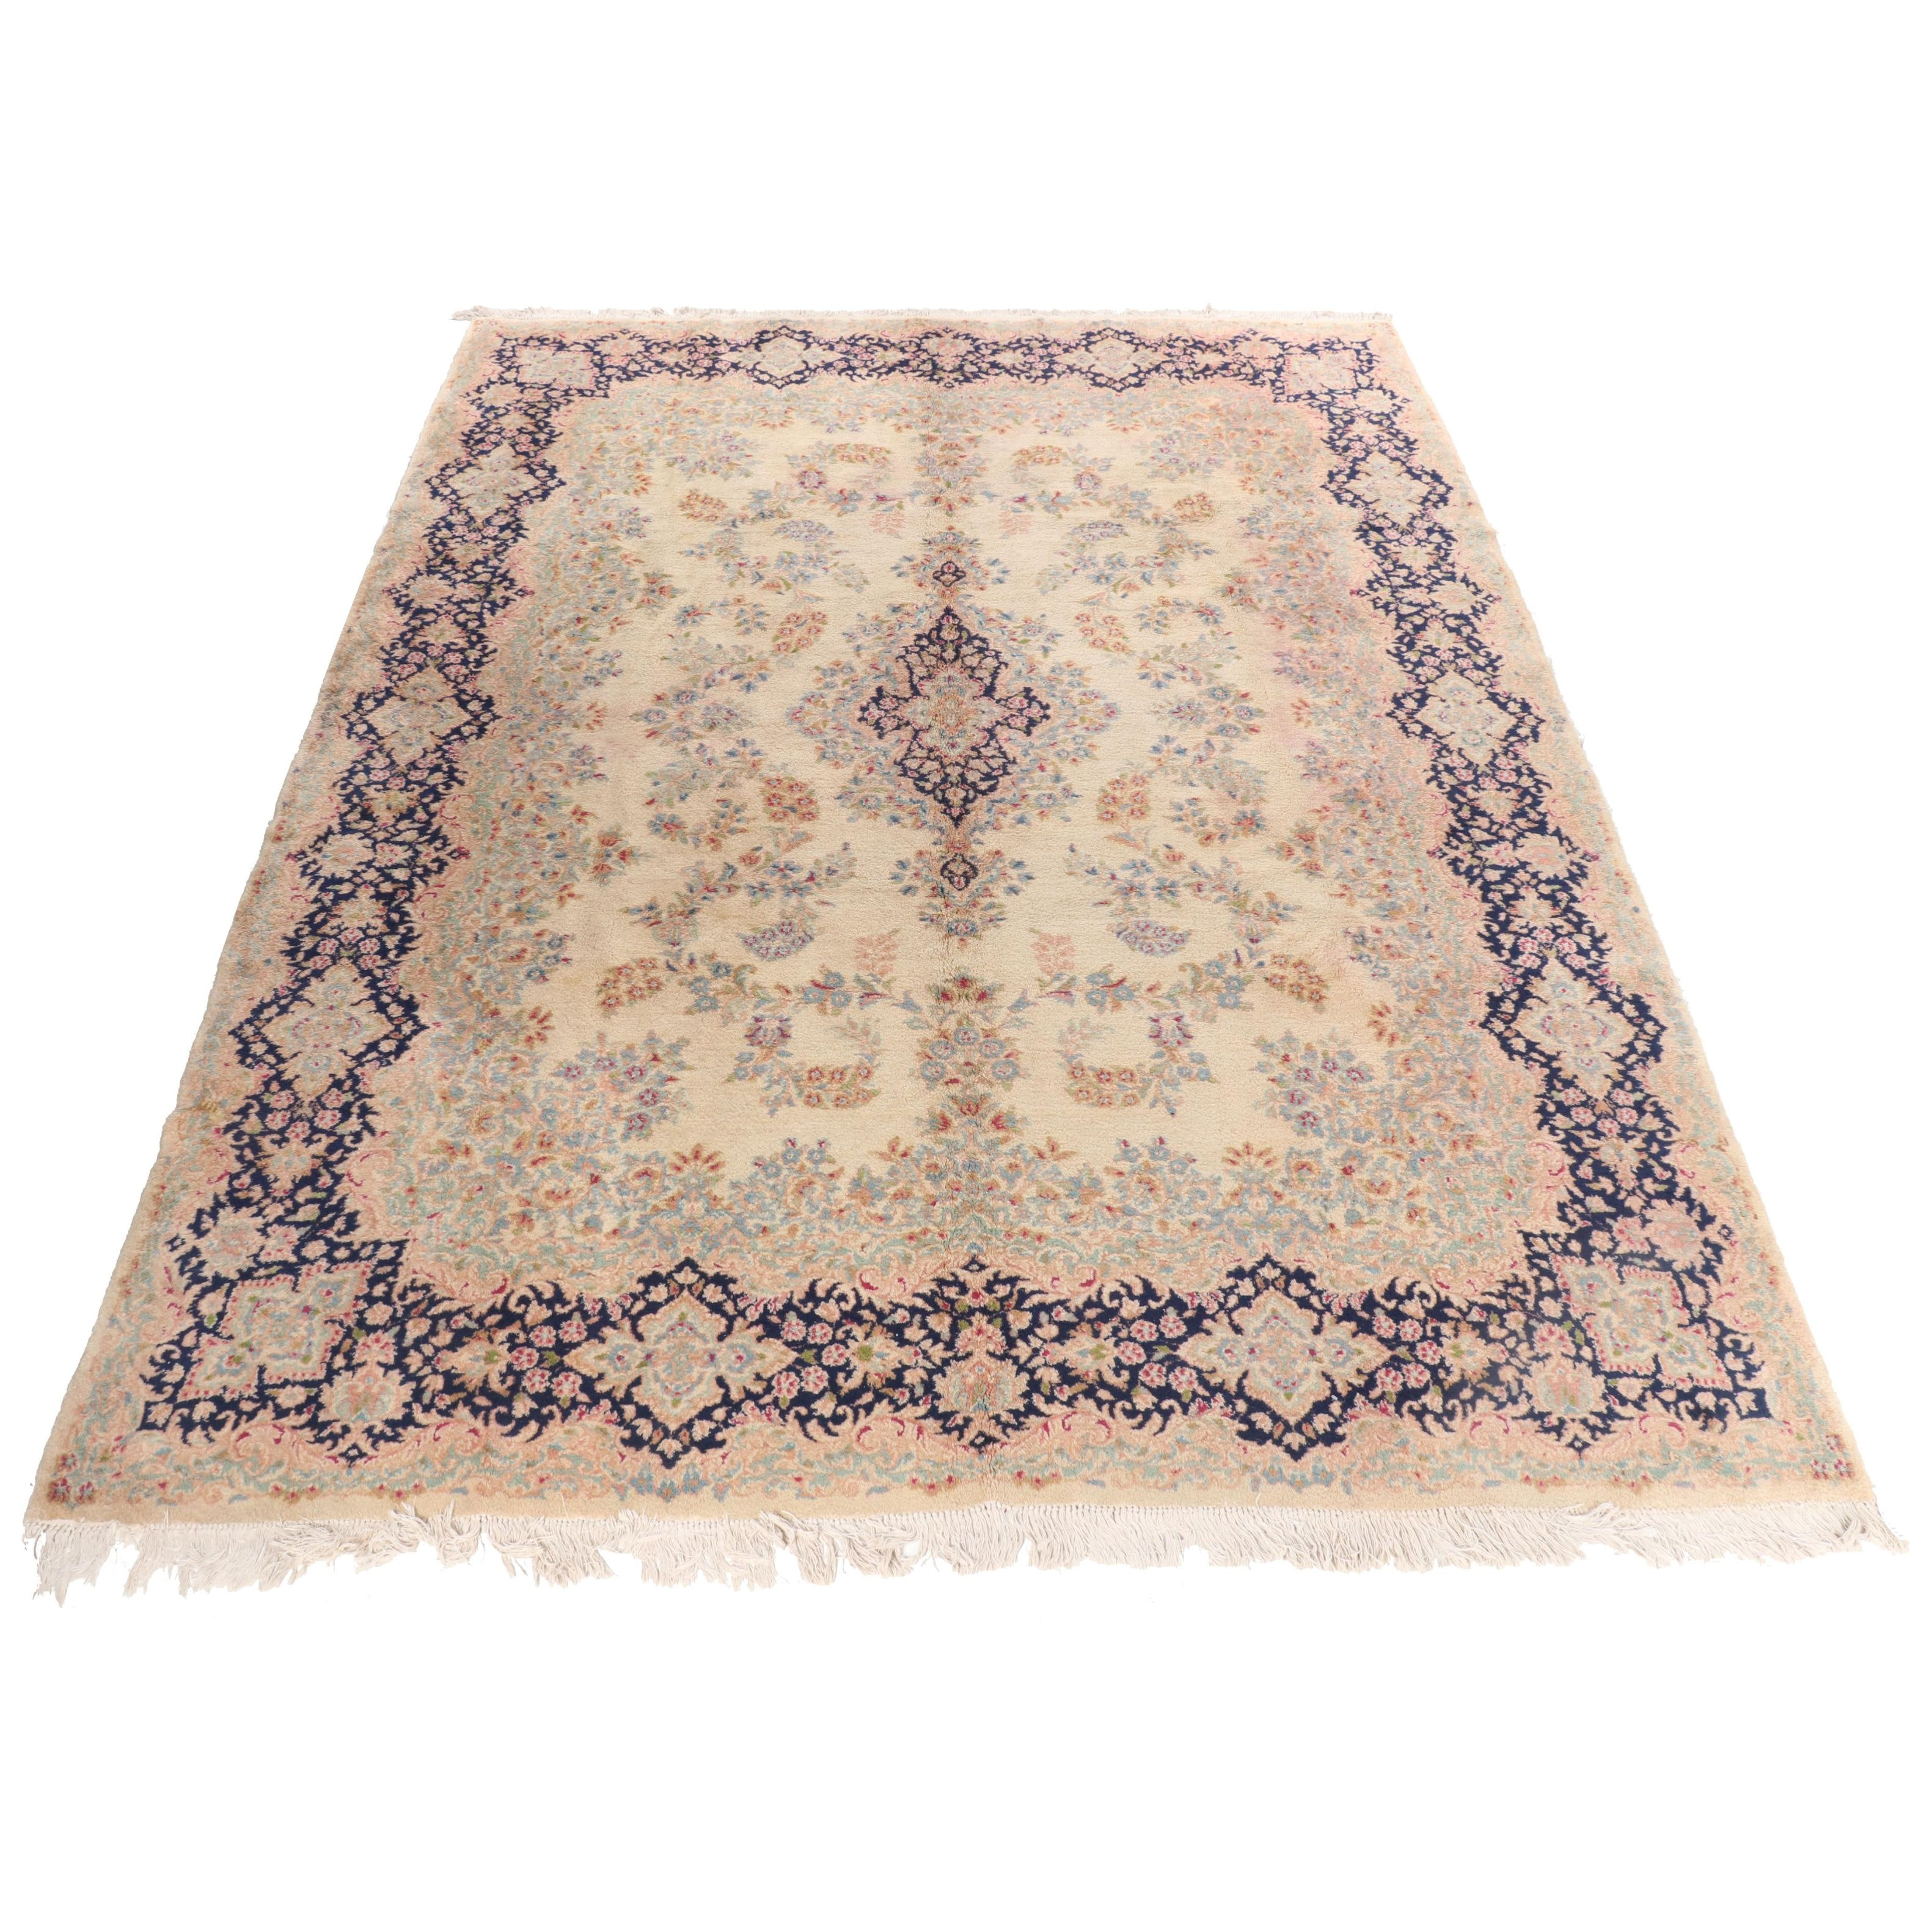 Hand-Knotted Persian Kerman Wool Area Rug